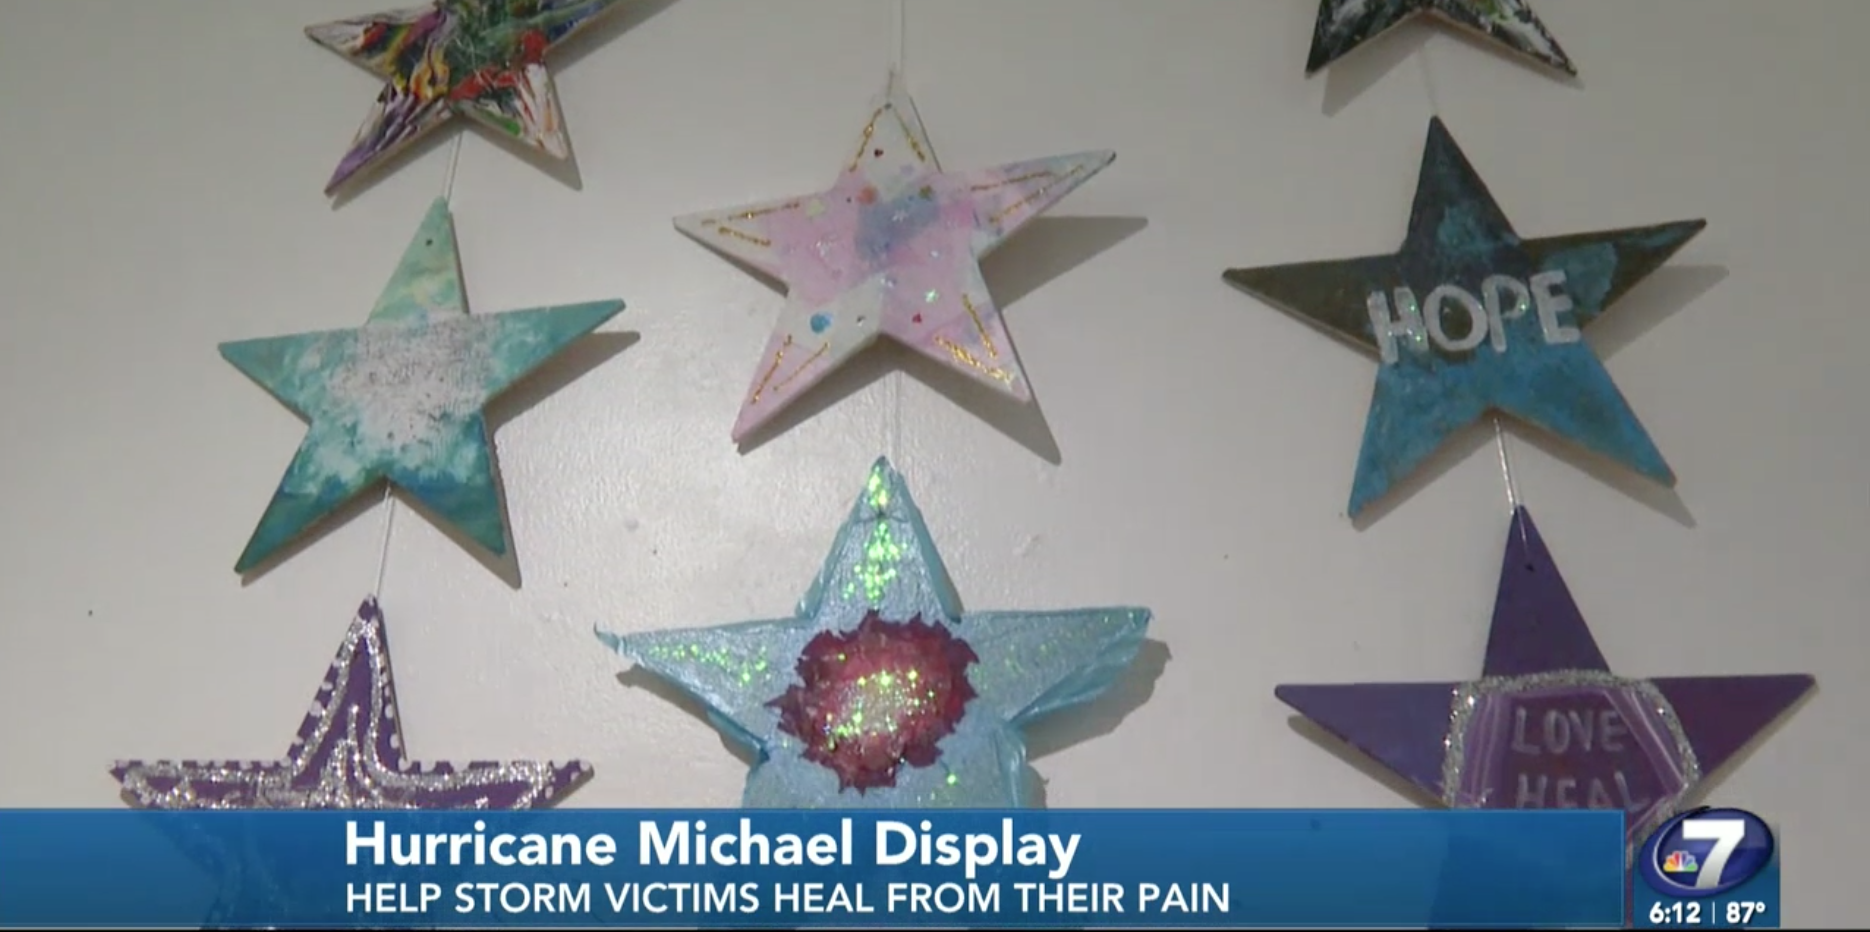 Hurricane Michael inspired artwork on display at Panama City Center for the Arts